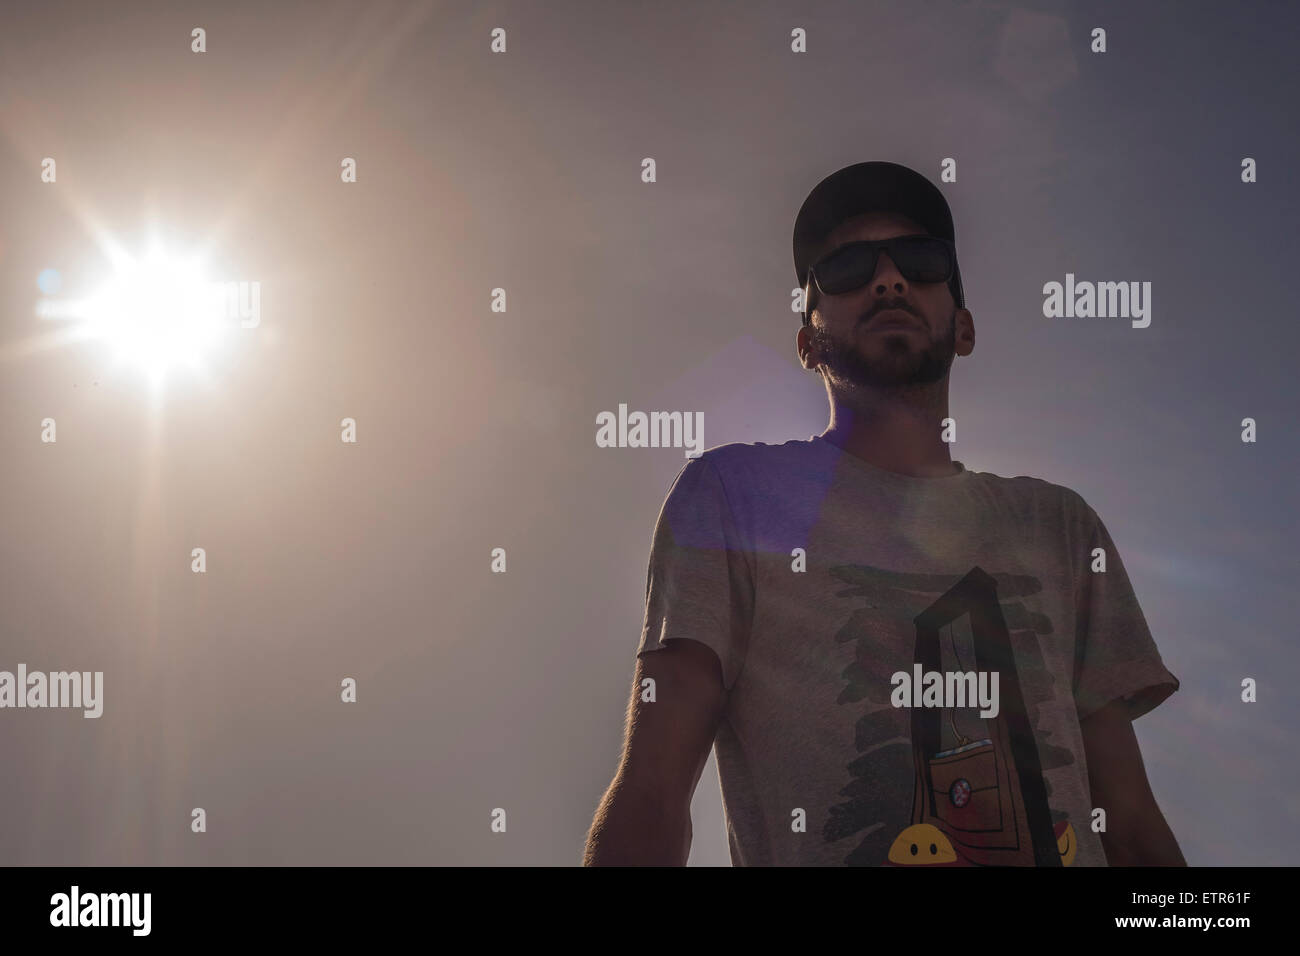 Lifestyle, urban scene, male, young, men, sunglass, observing, facing sunlight, cap, Generation Y - Stock Image